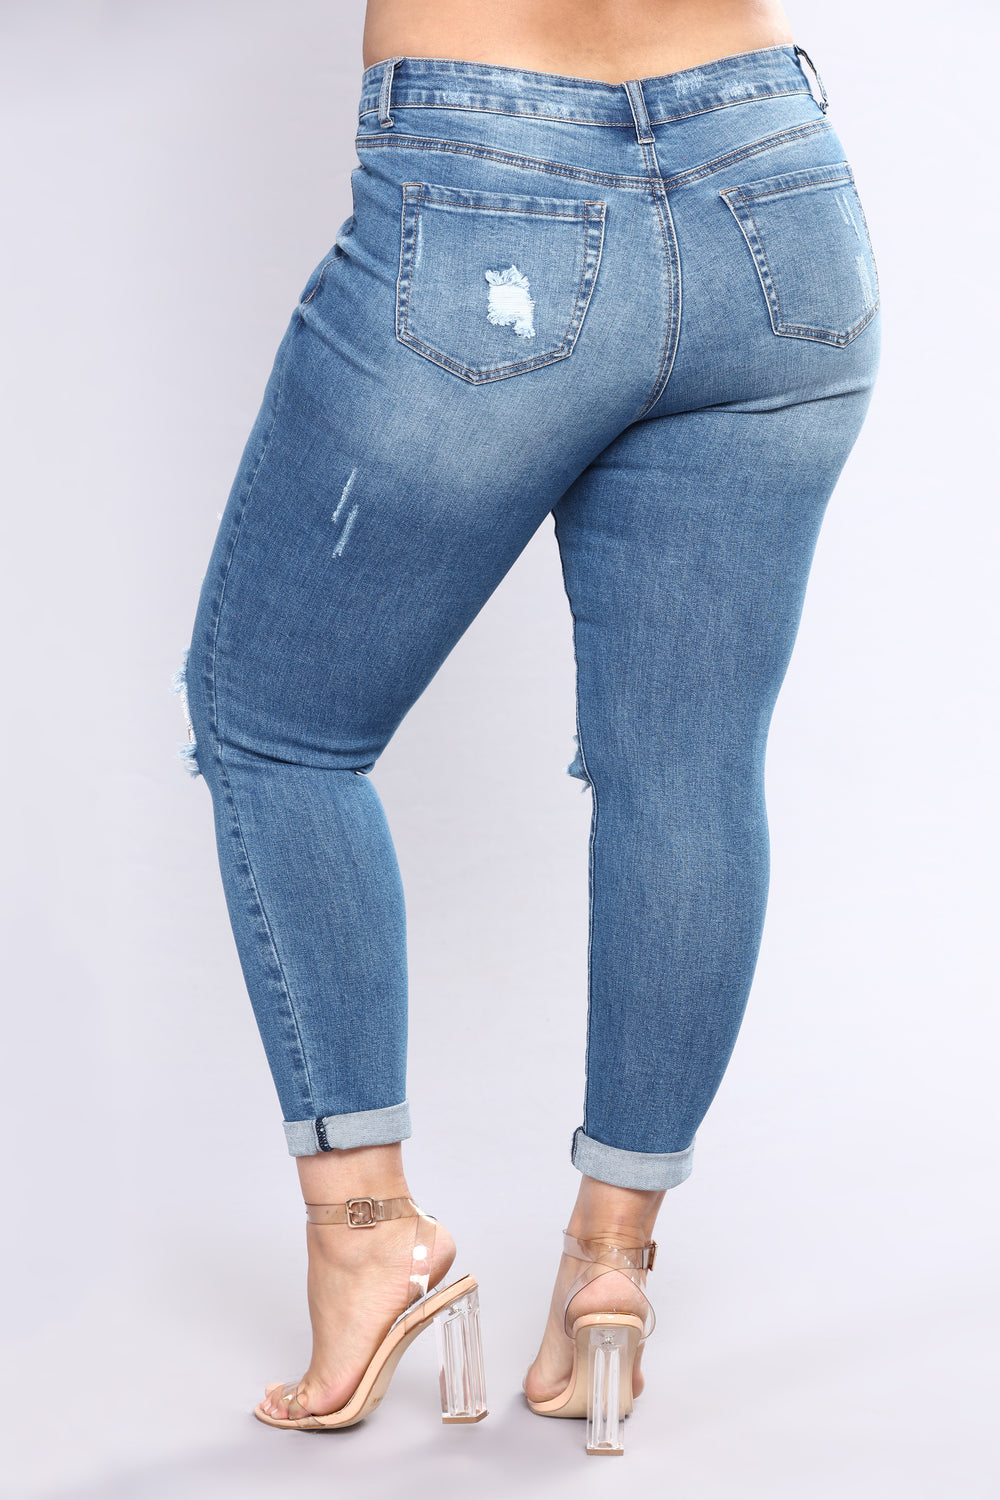 Kneed You Now Skinny Jeans - Medium Blue Wash